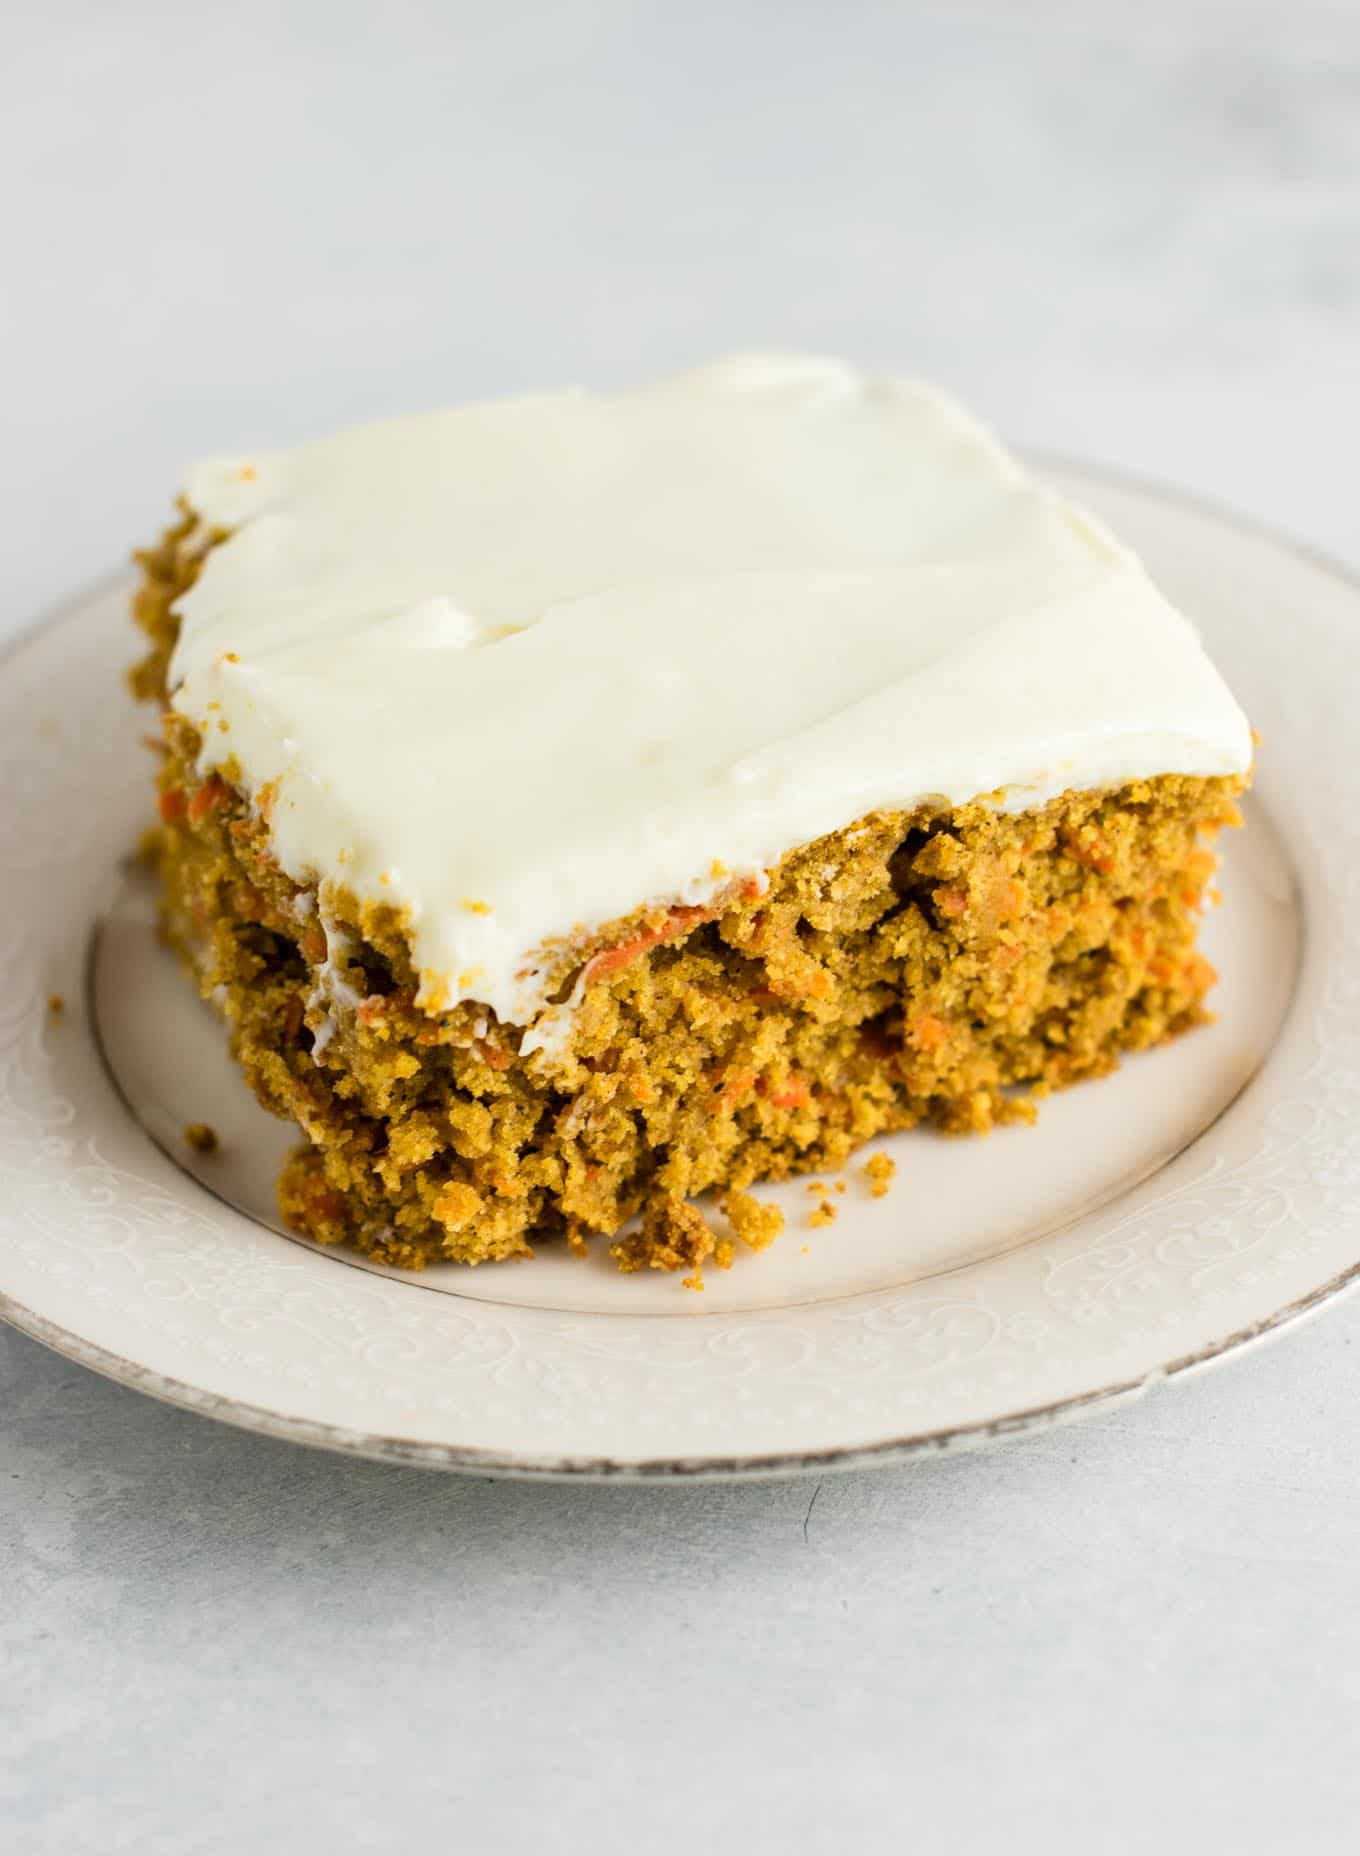 Easy gluten free carrot cake with cream cheese frosting. No hard to find flour blends needed - made with just oat flour and coconut flour. The best gluten free cake I've ever made! #glutenfree #carrotcake #glutenfreecake #creamcheesefrosting #healthydessert #dessert #glutenfreecarrotcake